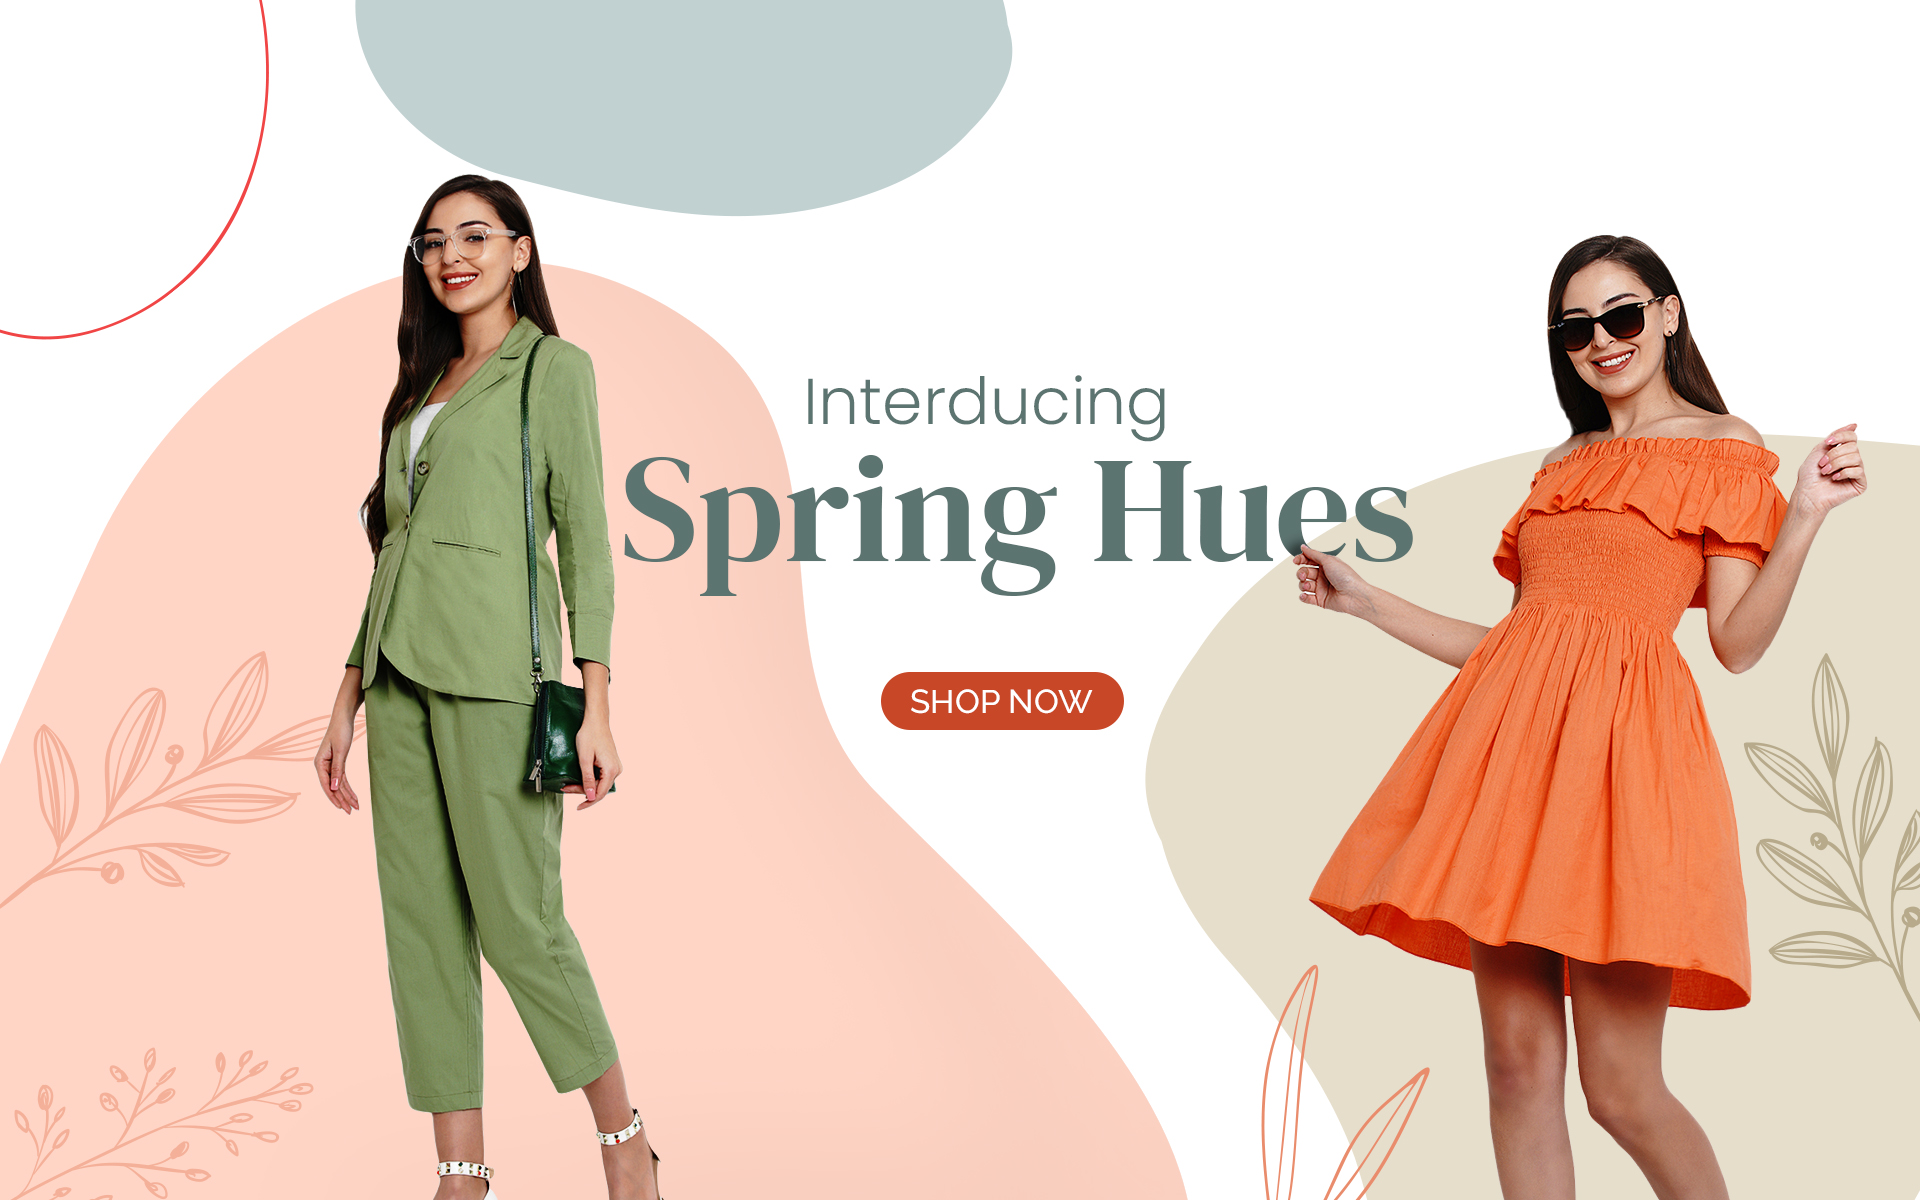 Spring hues collection